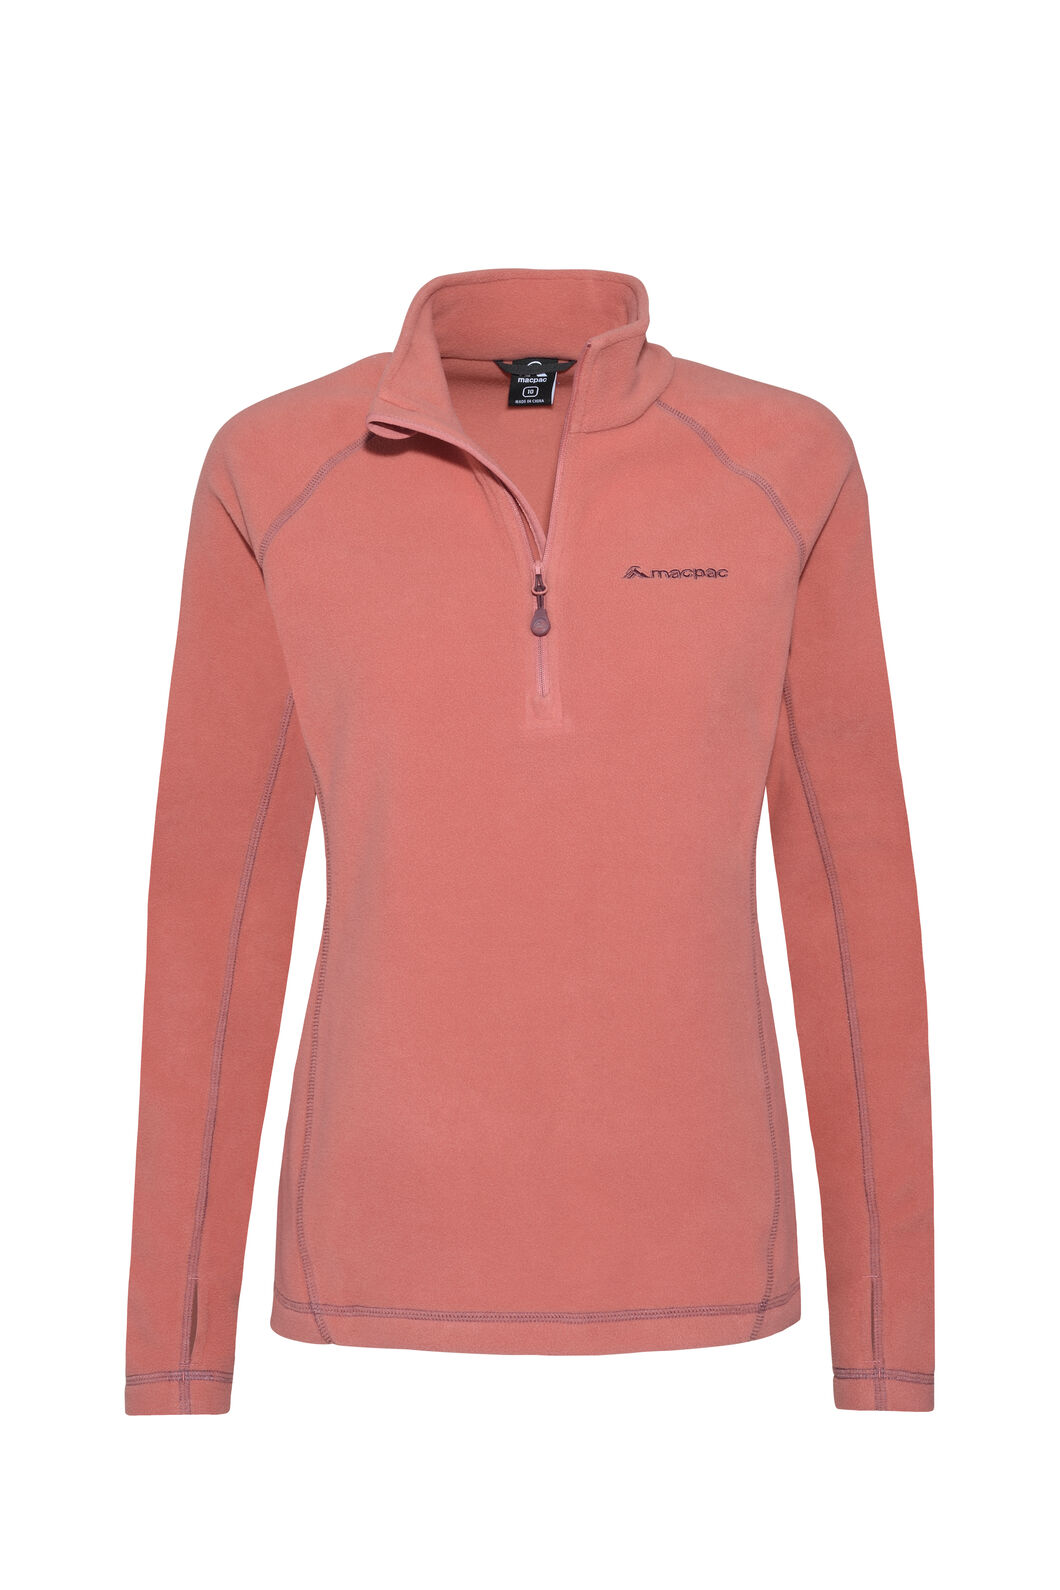 Macpac Tui Polartec® Micro Fleece® Pullover — Women's, Dusty Cedar, hi-res